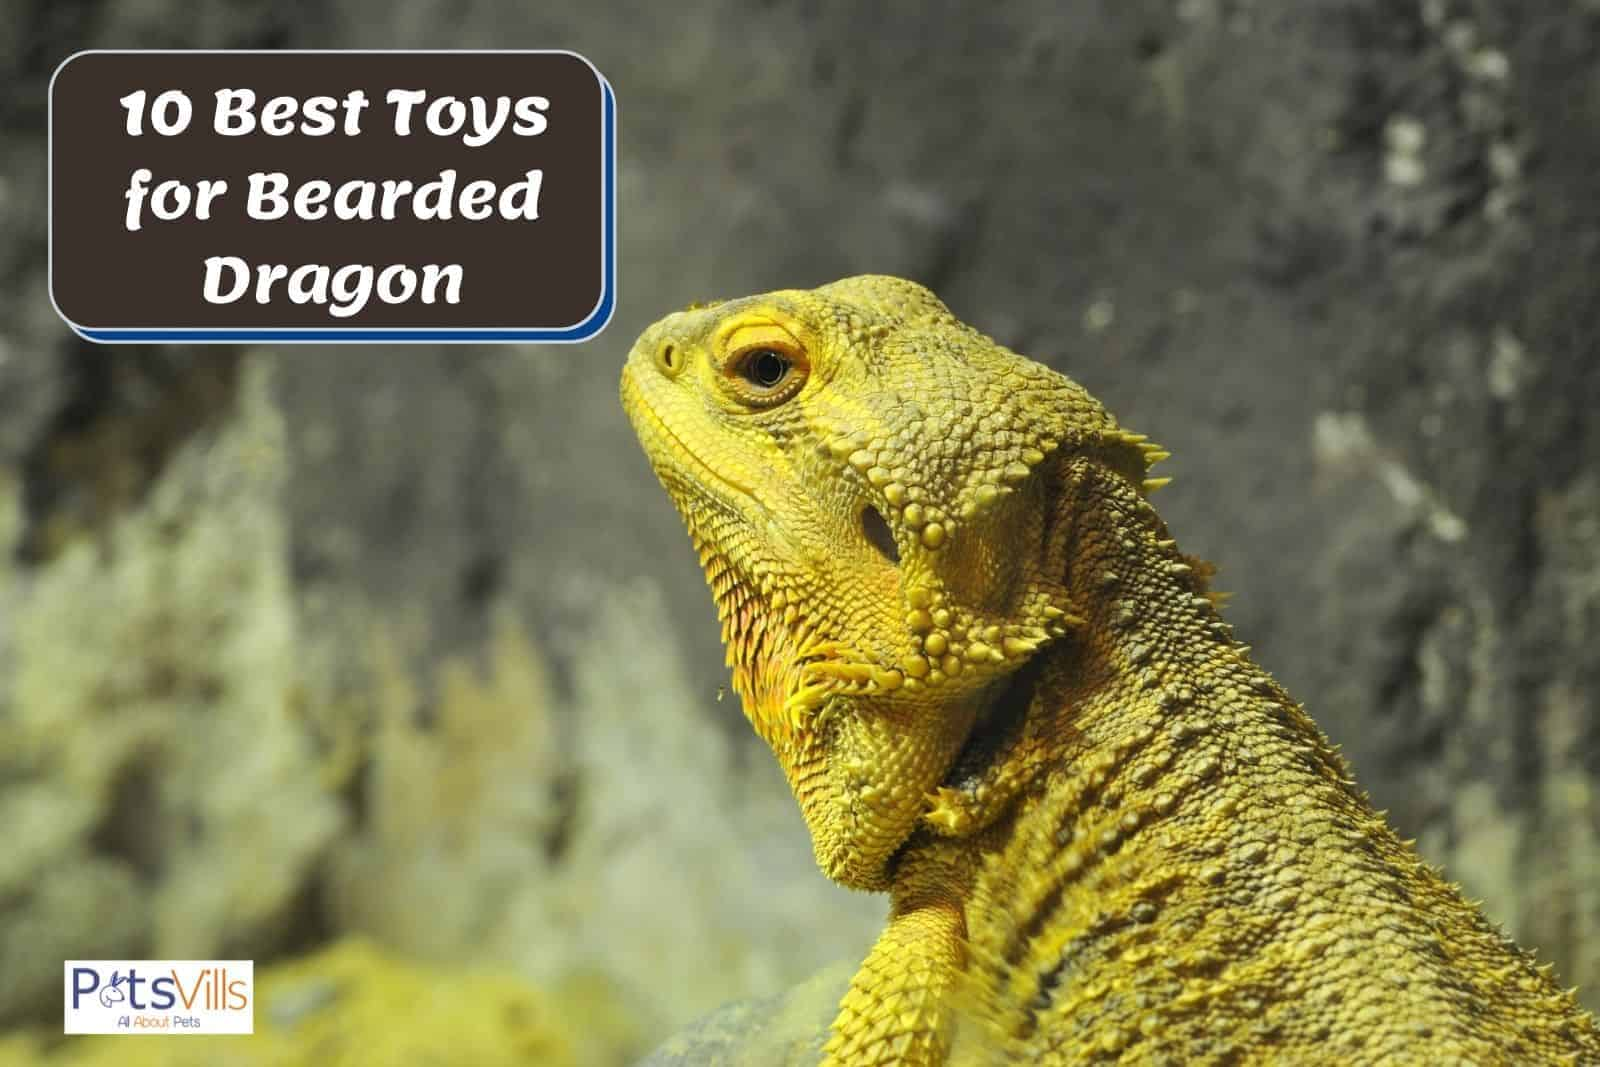 a large yellow bearded dragon